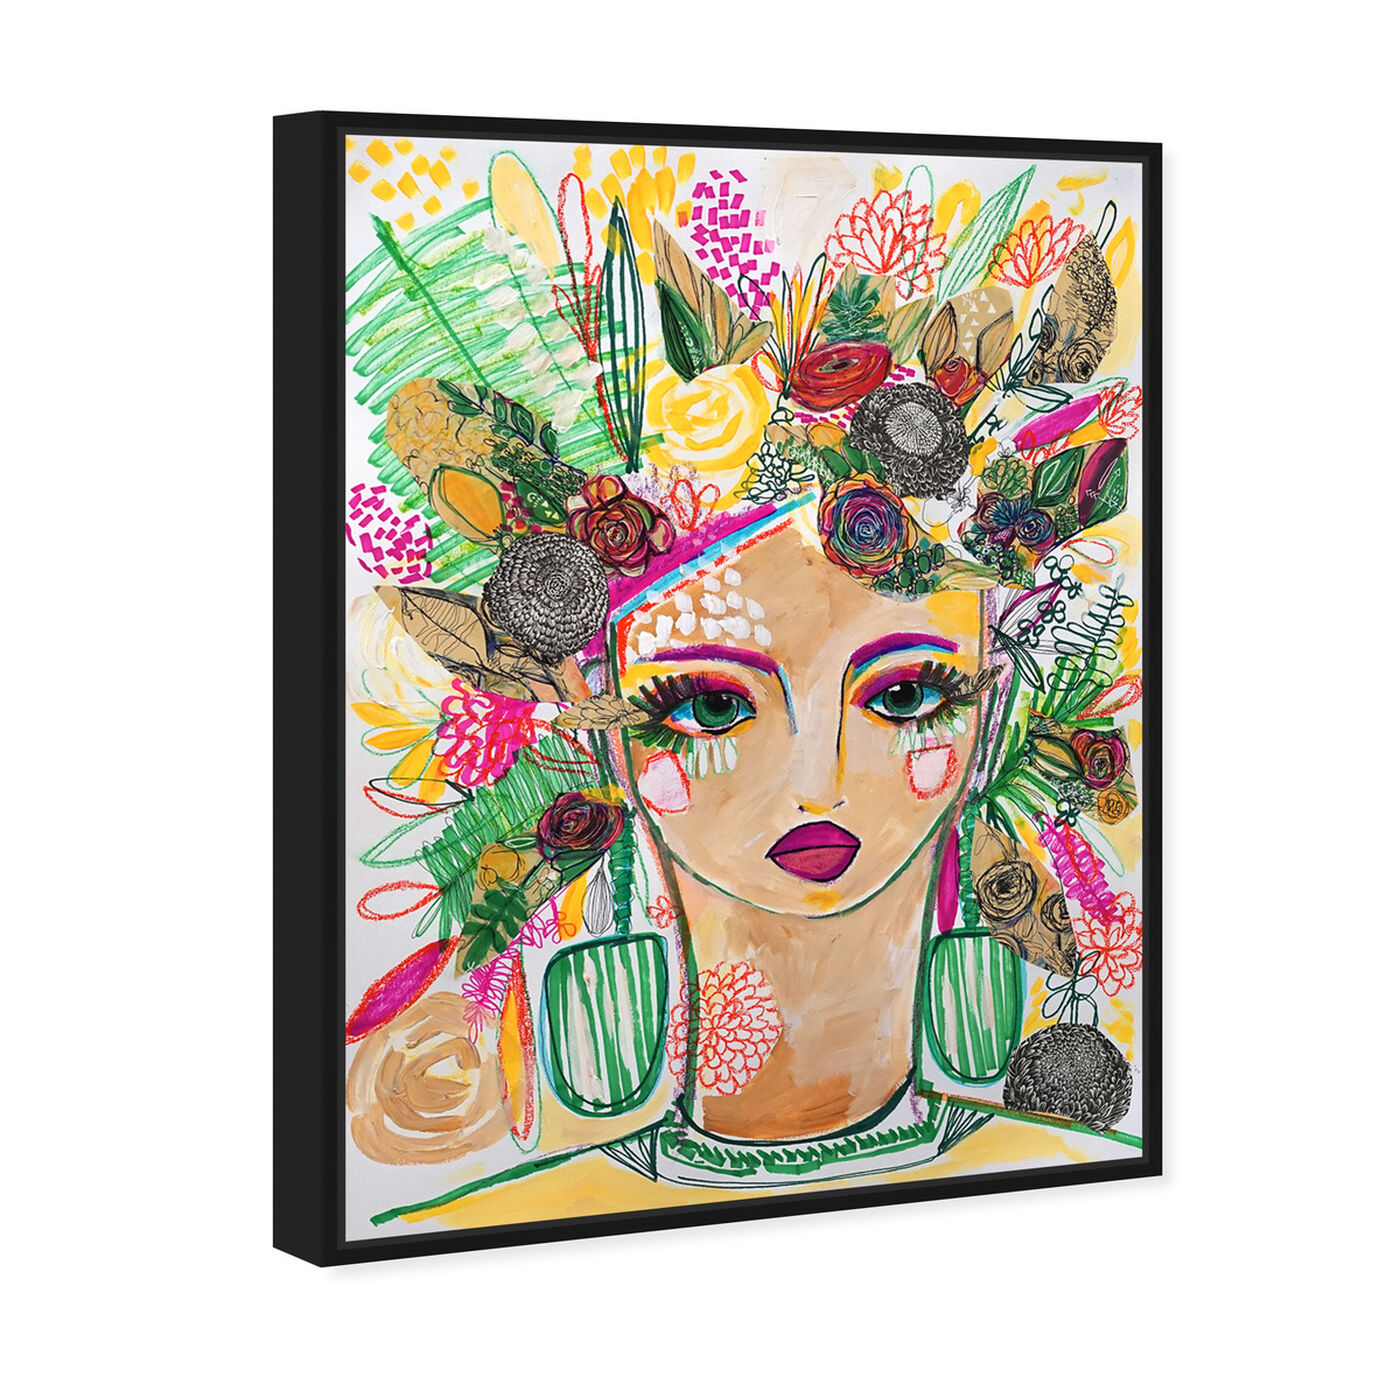 Angled view of Spring Goddess featuring people and portraits and portraits art.